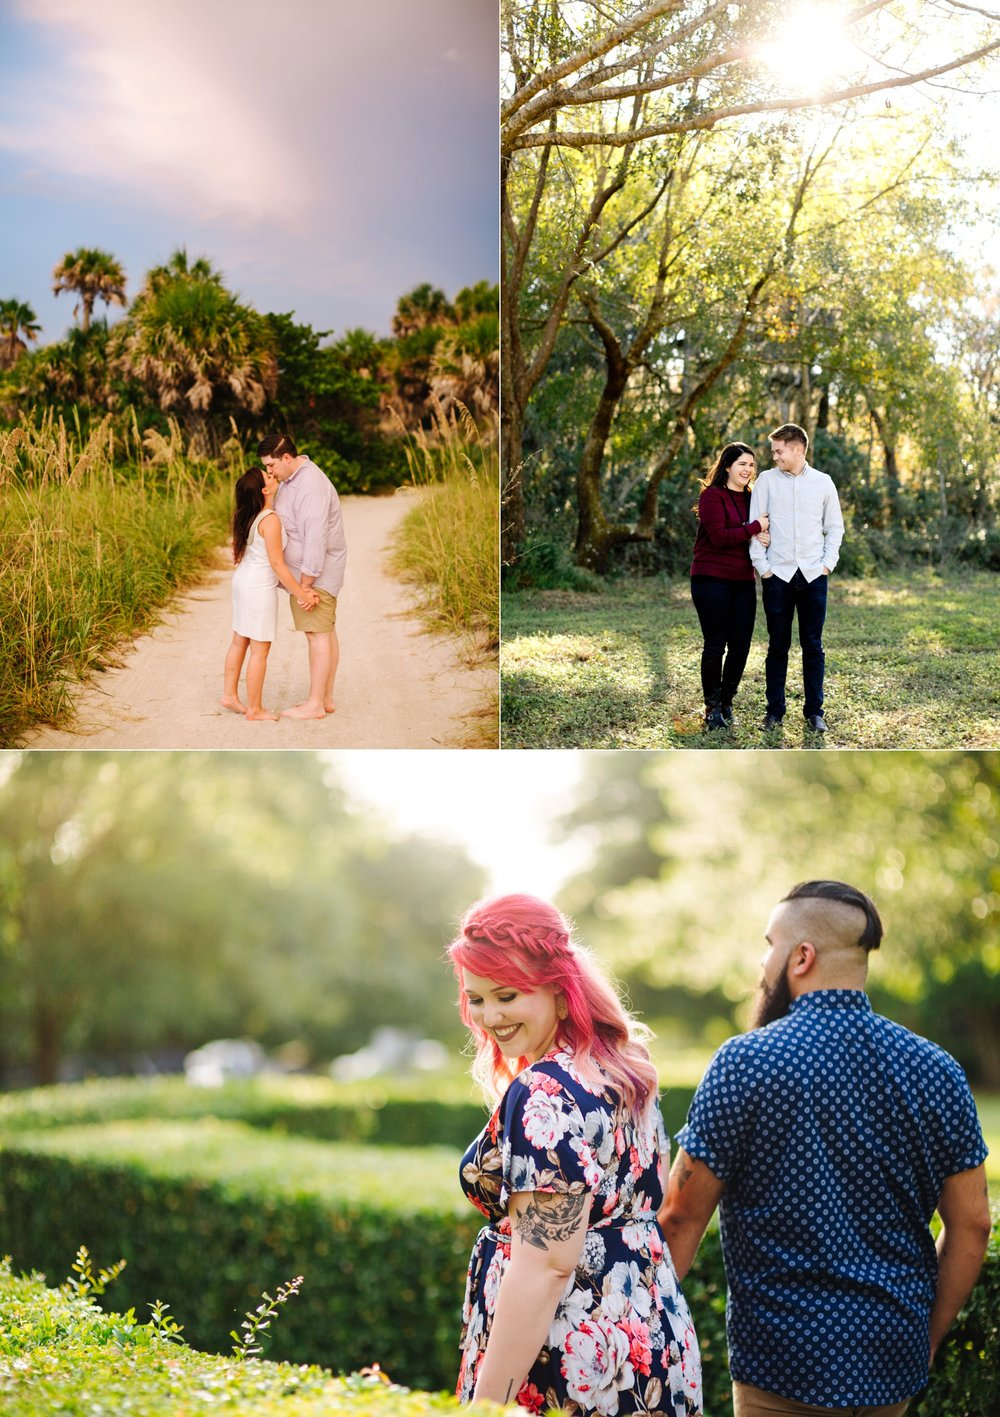 Jake & Katie Photography Best of Couples 2016-017.jpg